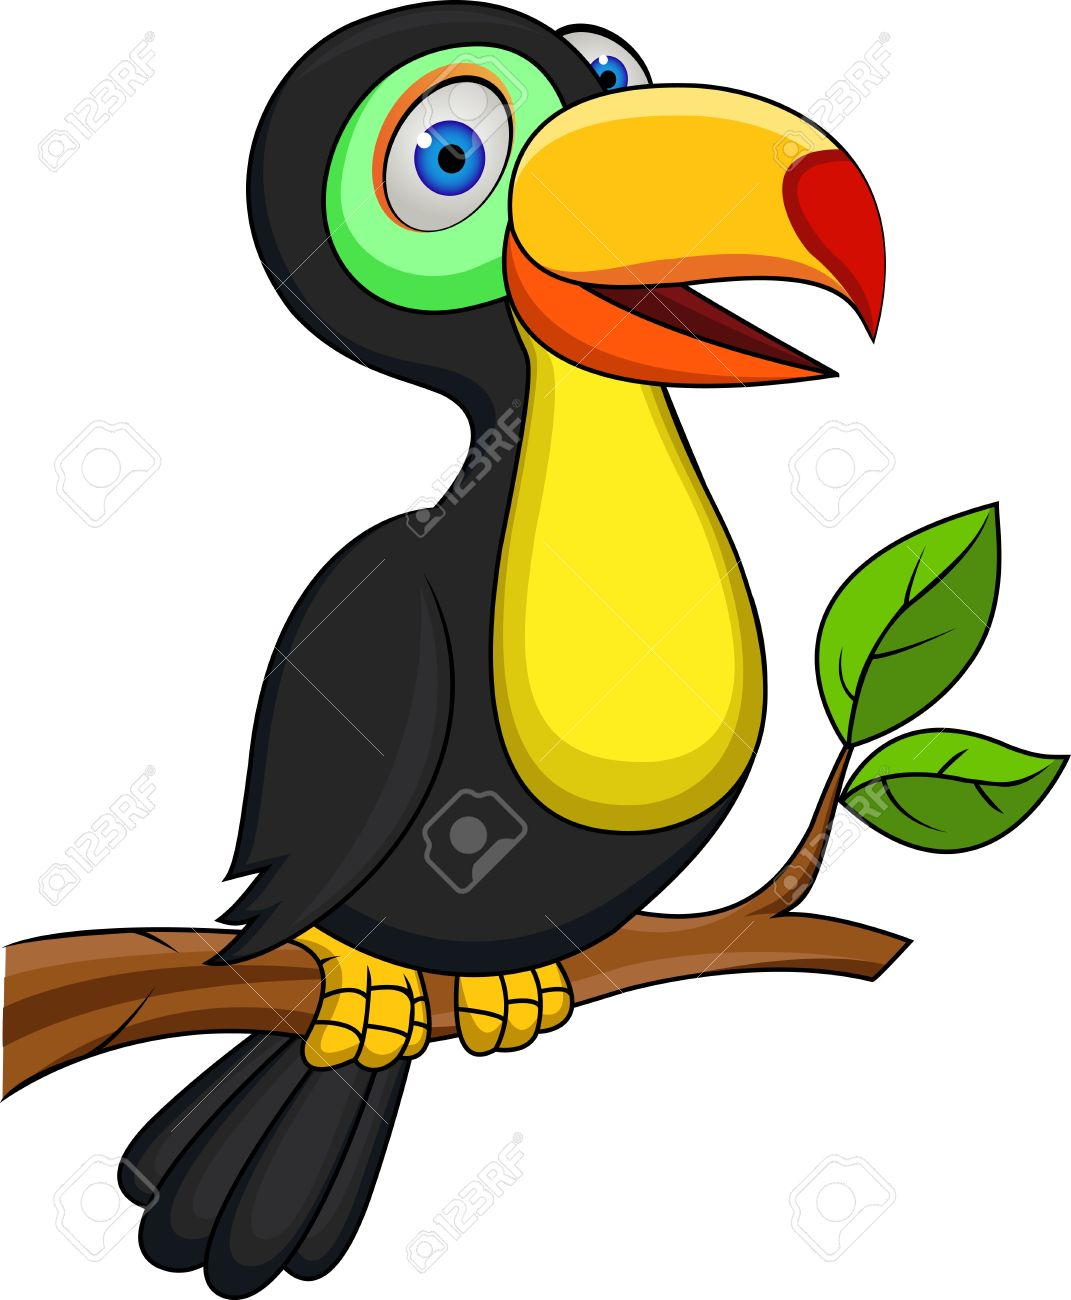 Toucan bird Stock Vector - 13779390